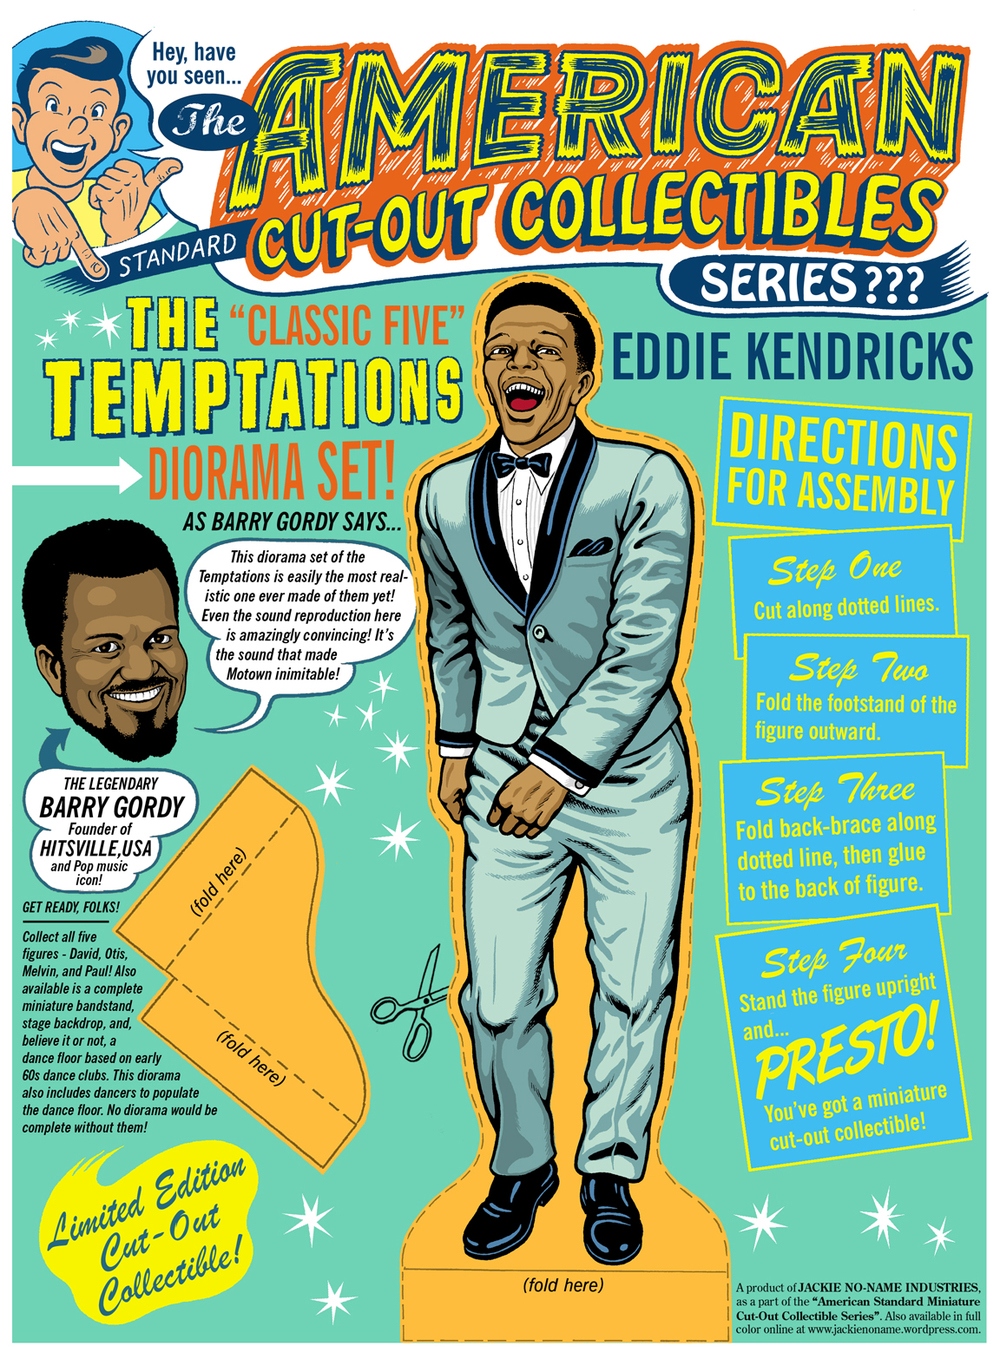 02 e_kendricks_collectible_150.jpg